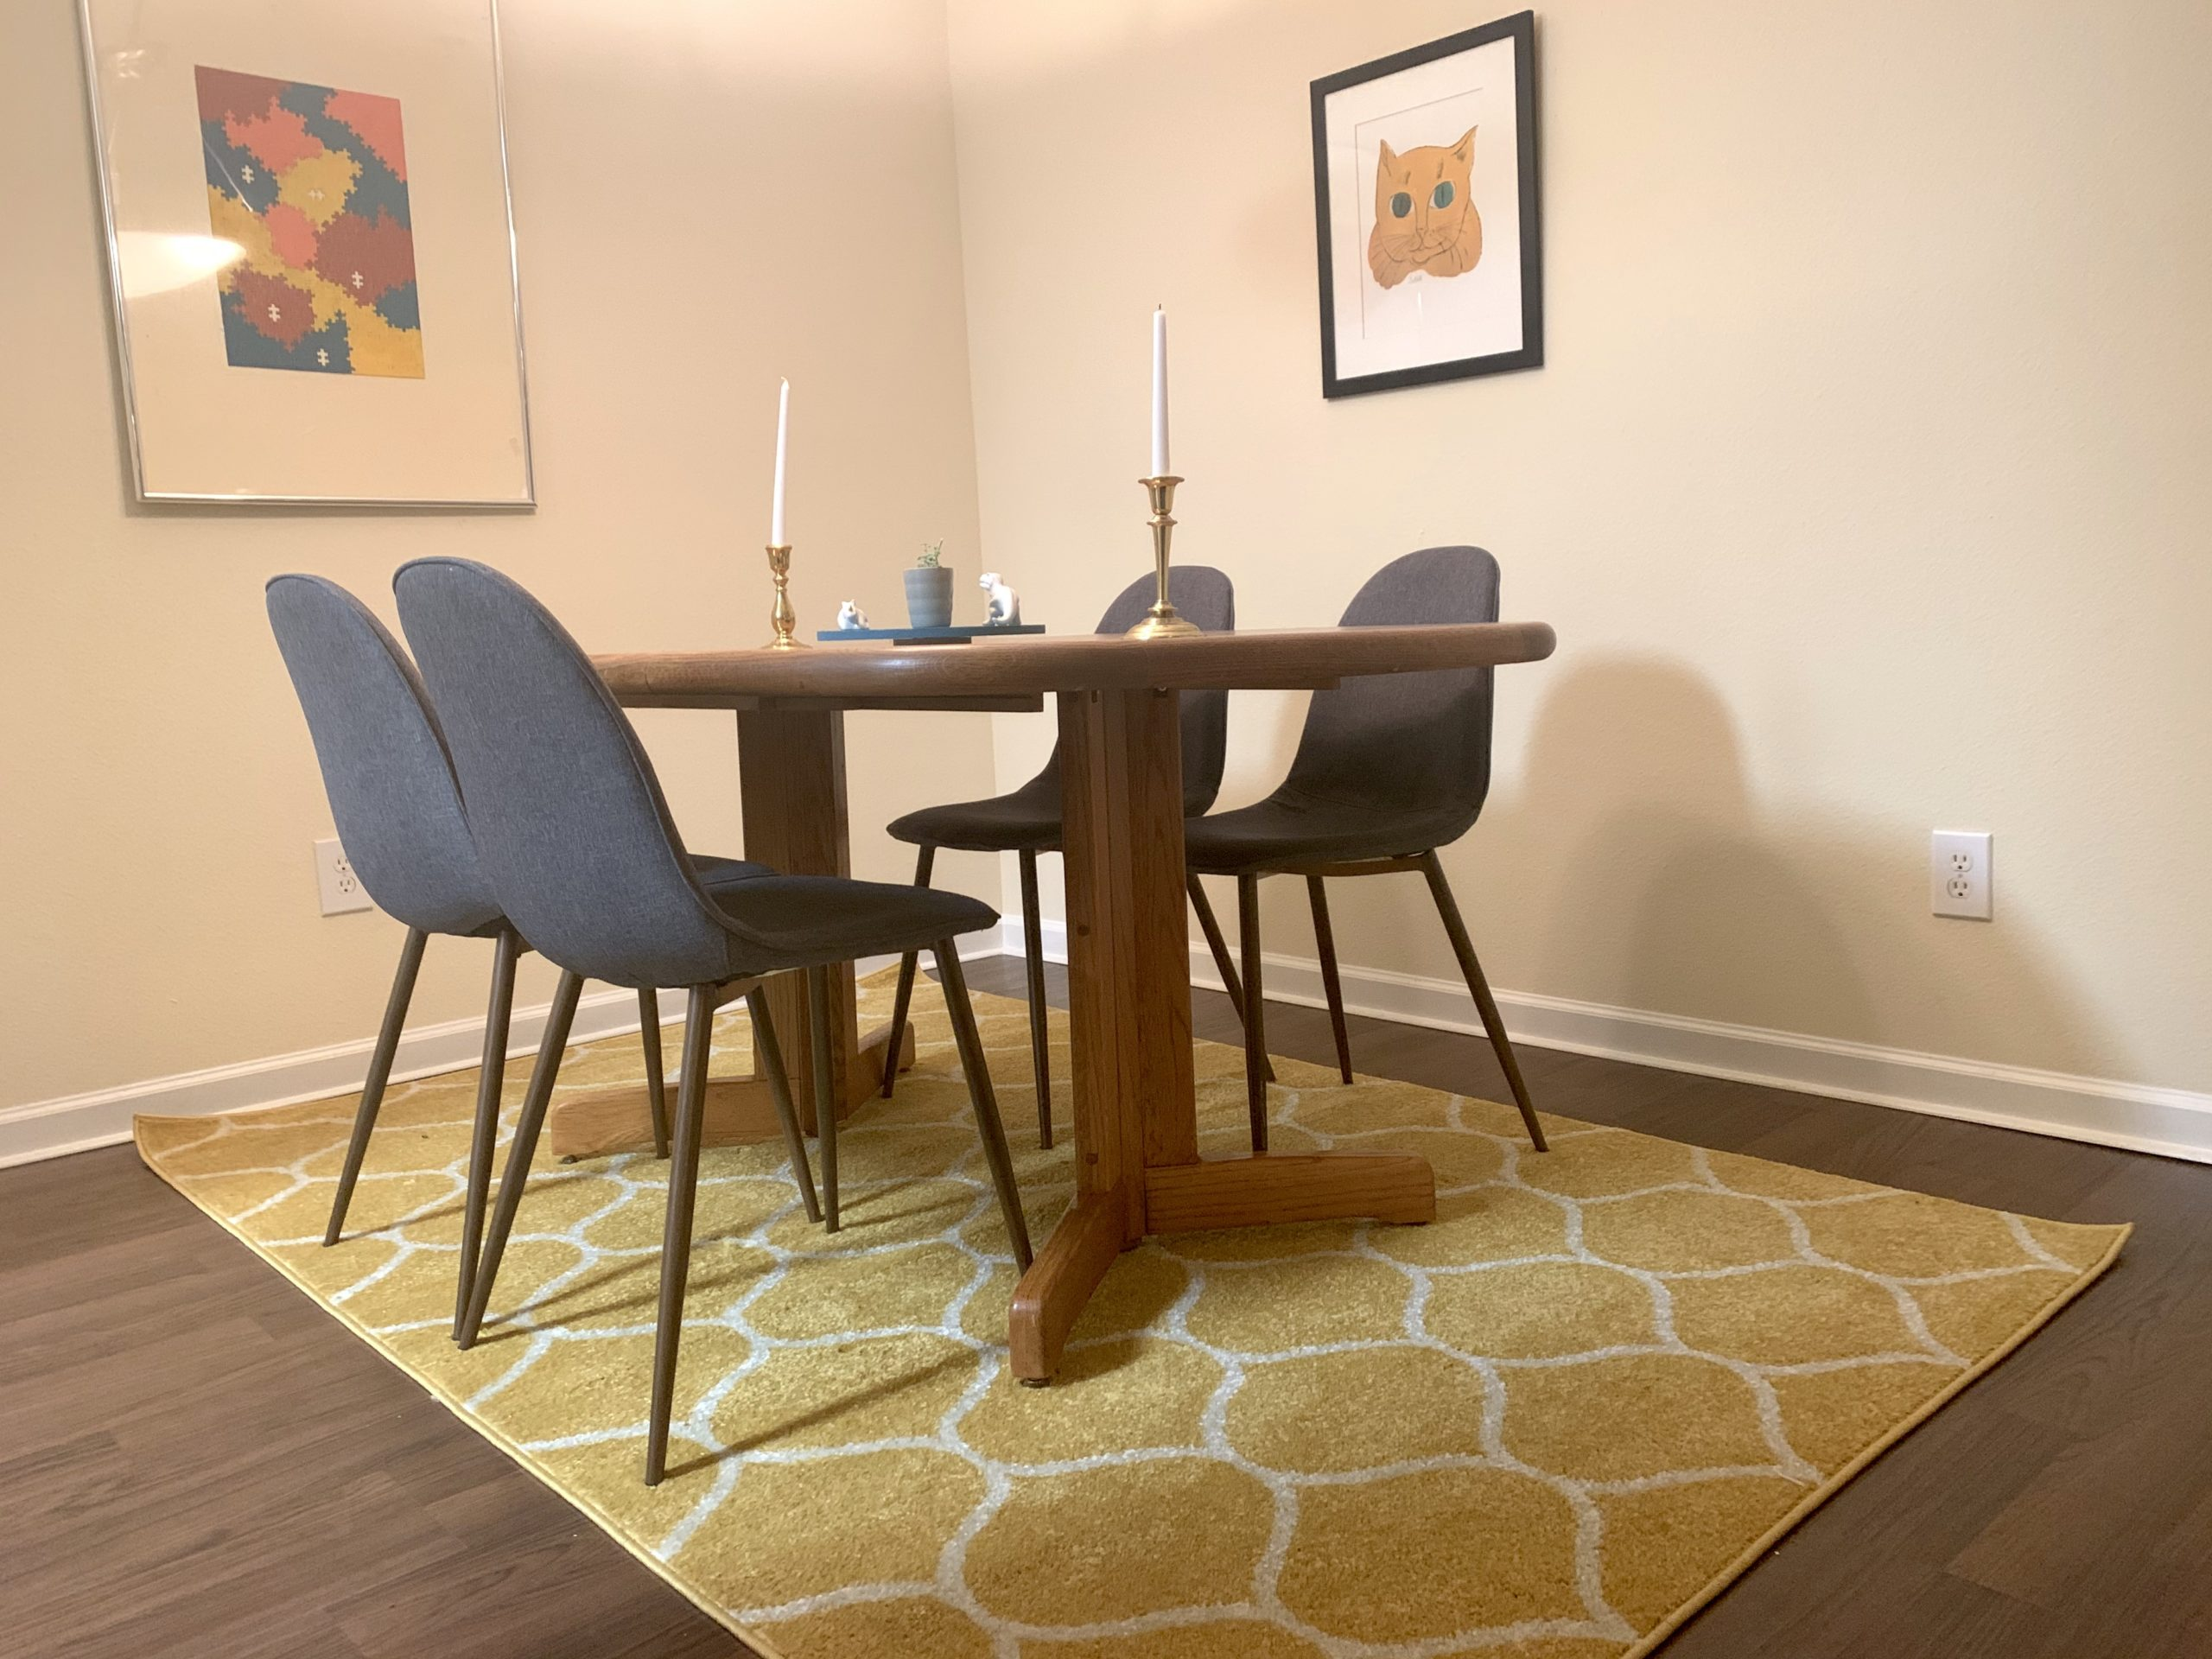 midcentury dining room with mustard yellow rug and abstract artwork on wall